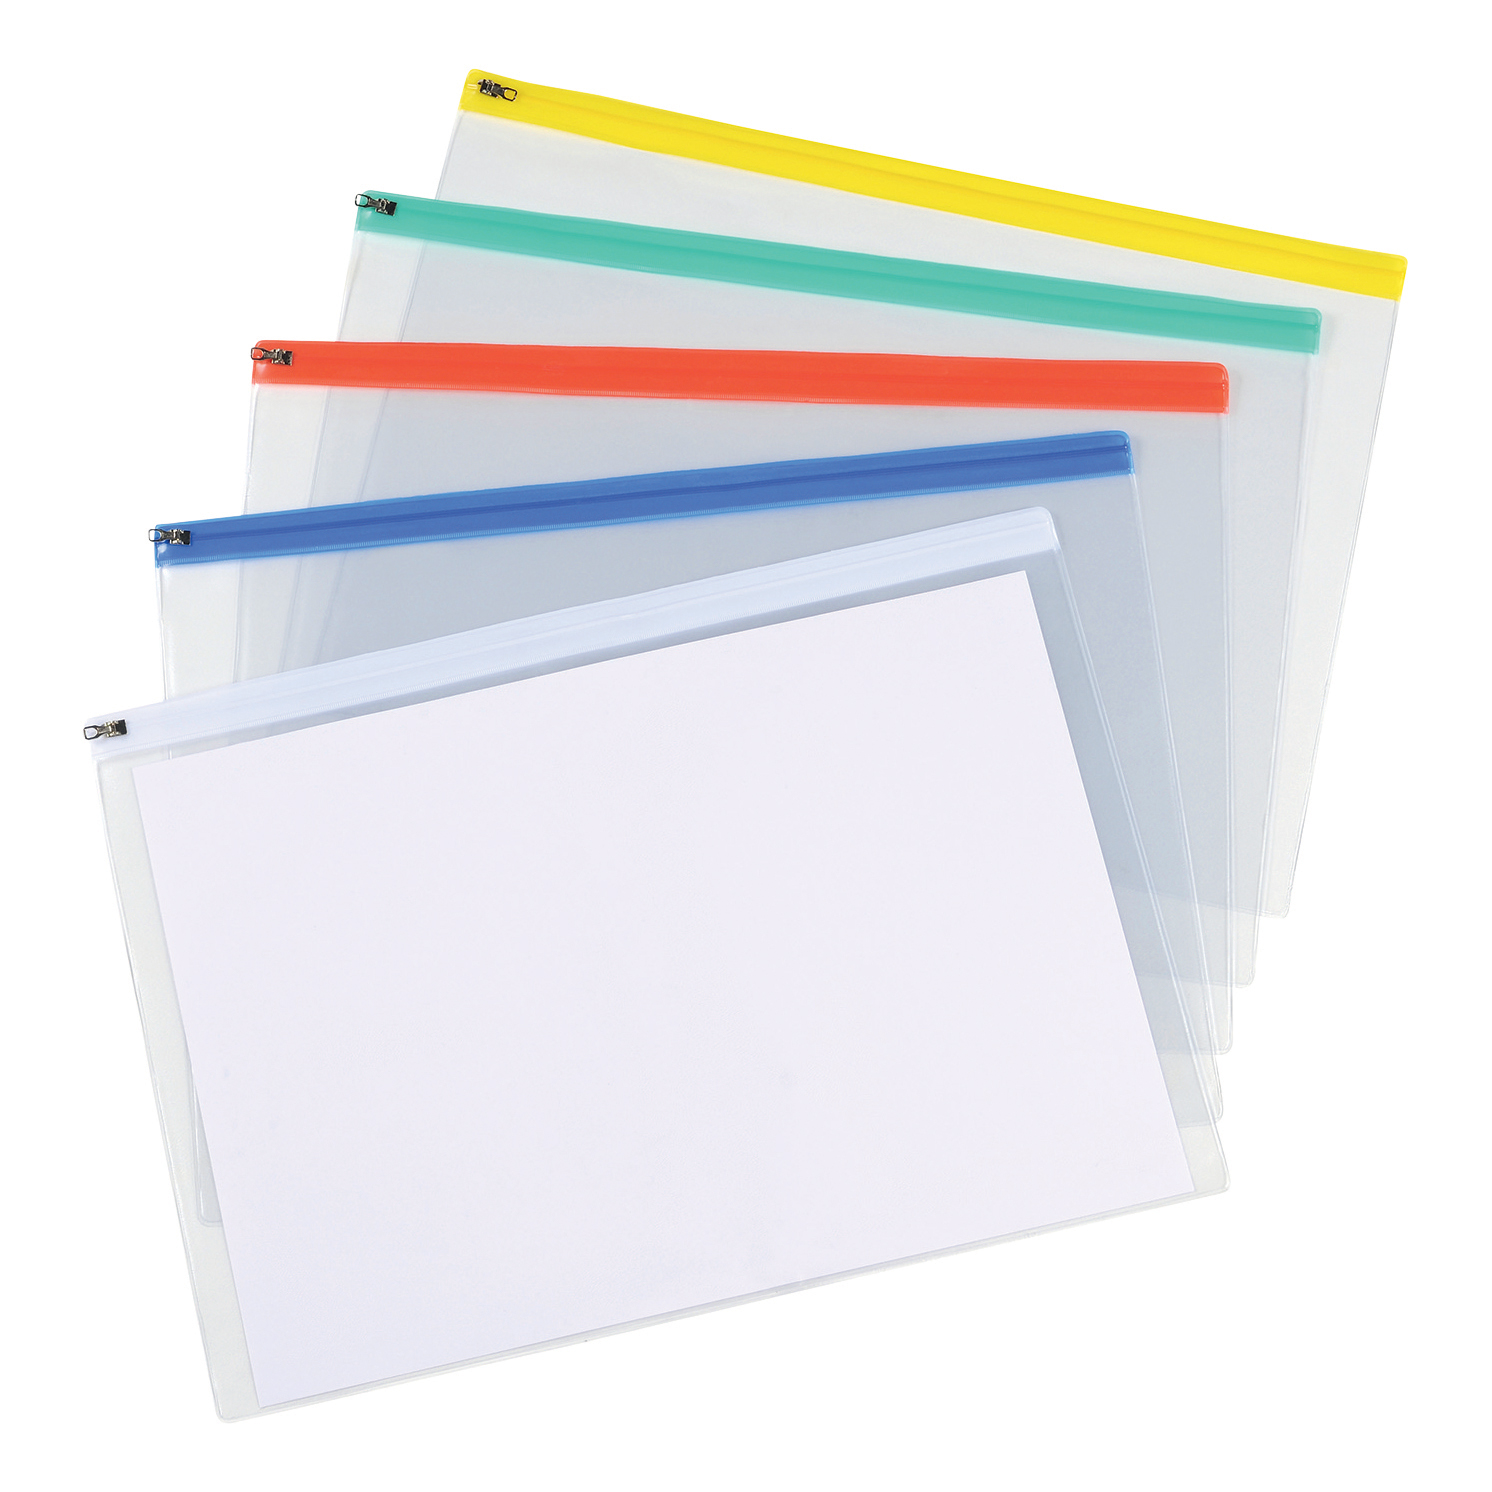 Zip Bags 5 Star Office Zip Filing Bags Clear Front with Coloured Seal A3 Assorted Pack 5